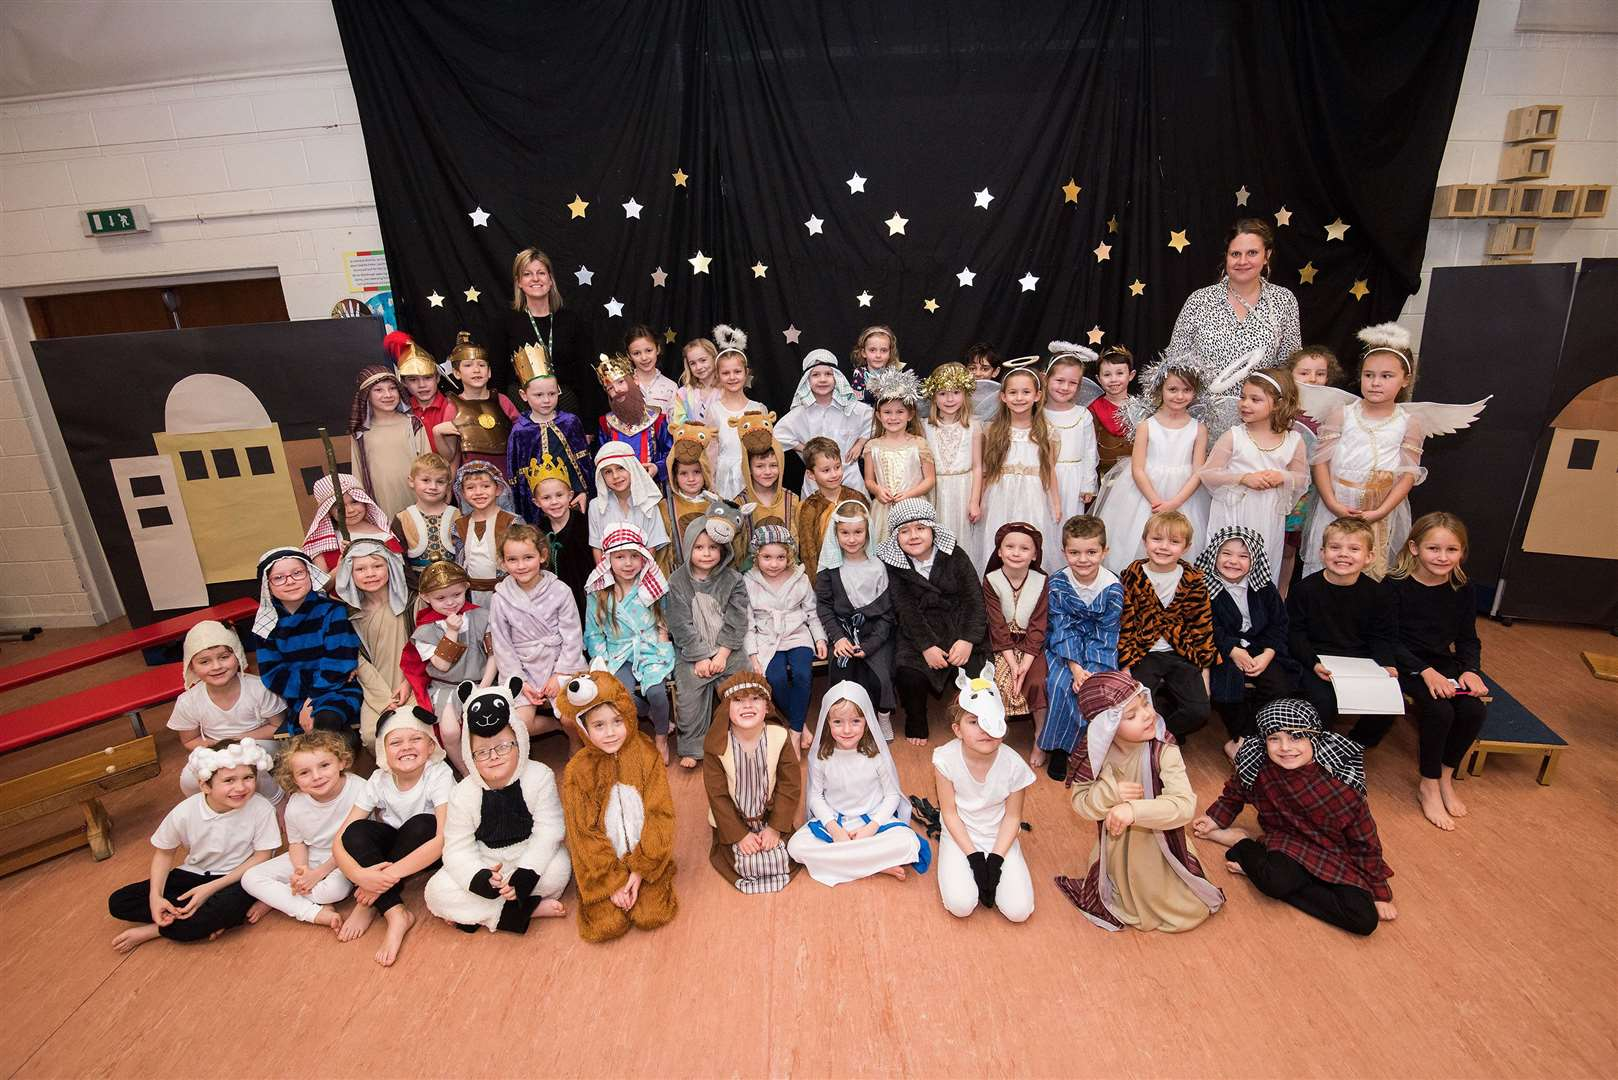 Christmas performance at Barrow CEVC Primary School. Picture by Mark Westley.